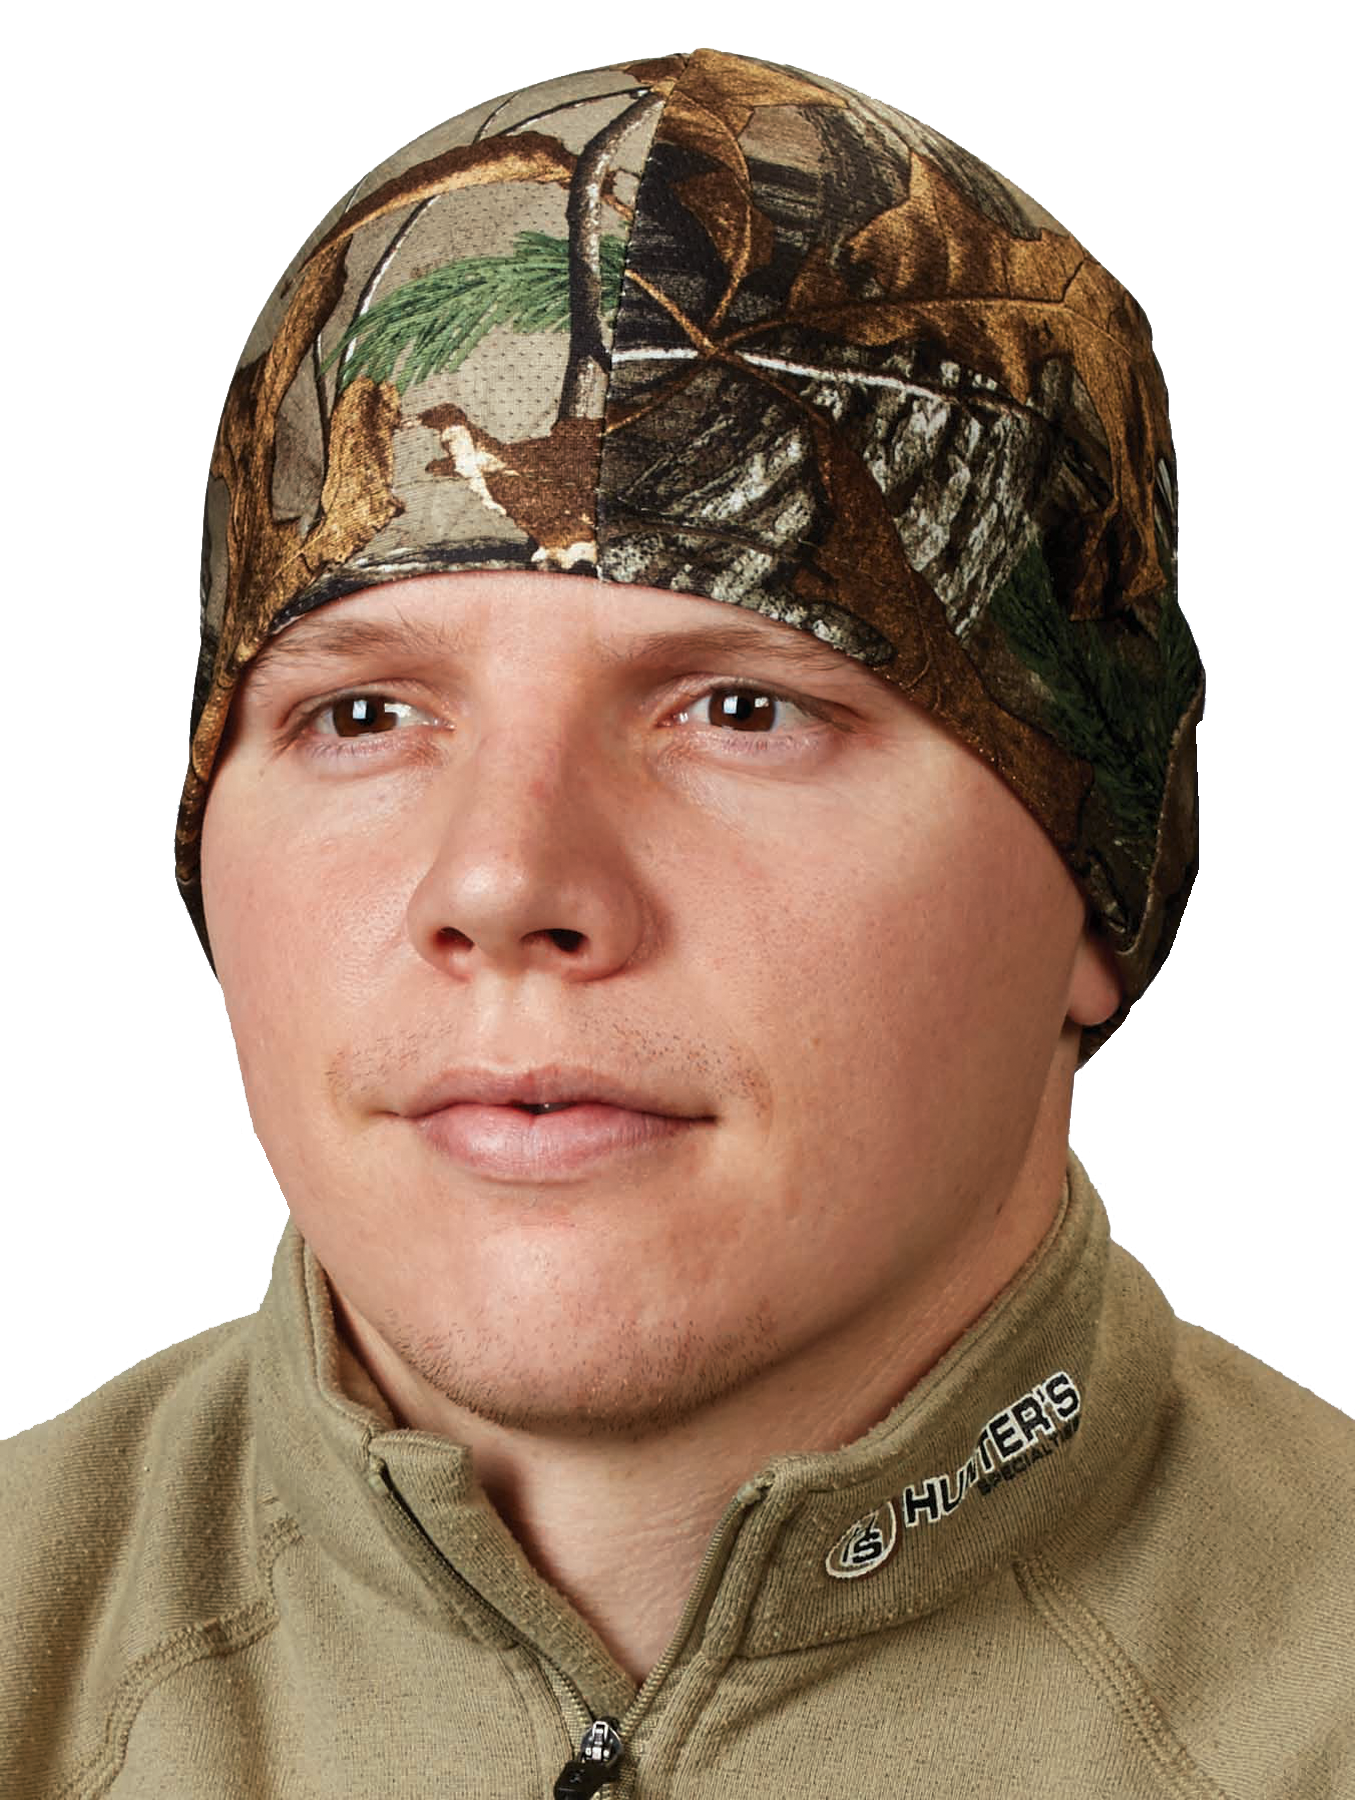 HuntersSpecial Beanie Cap Realtree Xtra One Size w/Scent-A-Way Silver